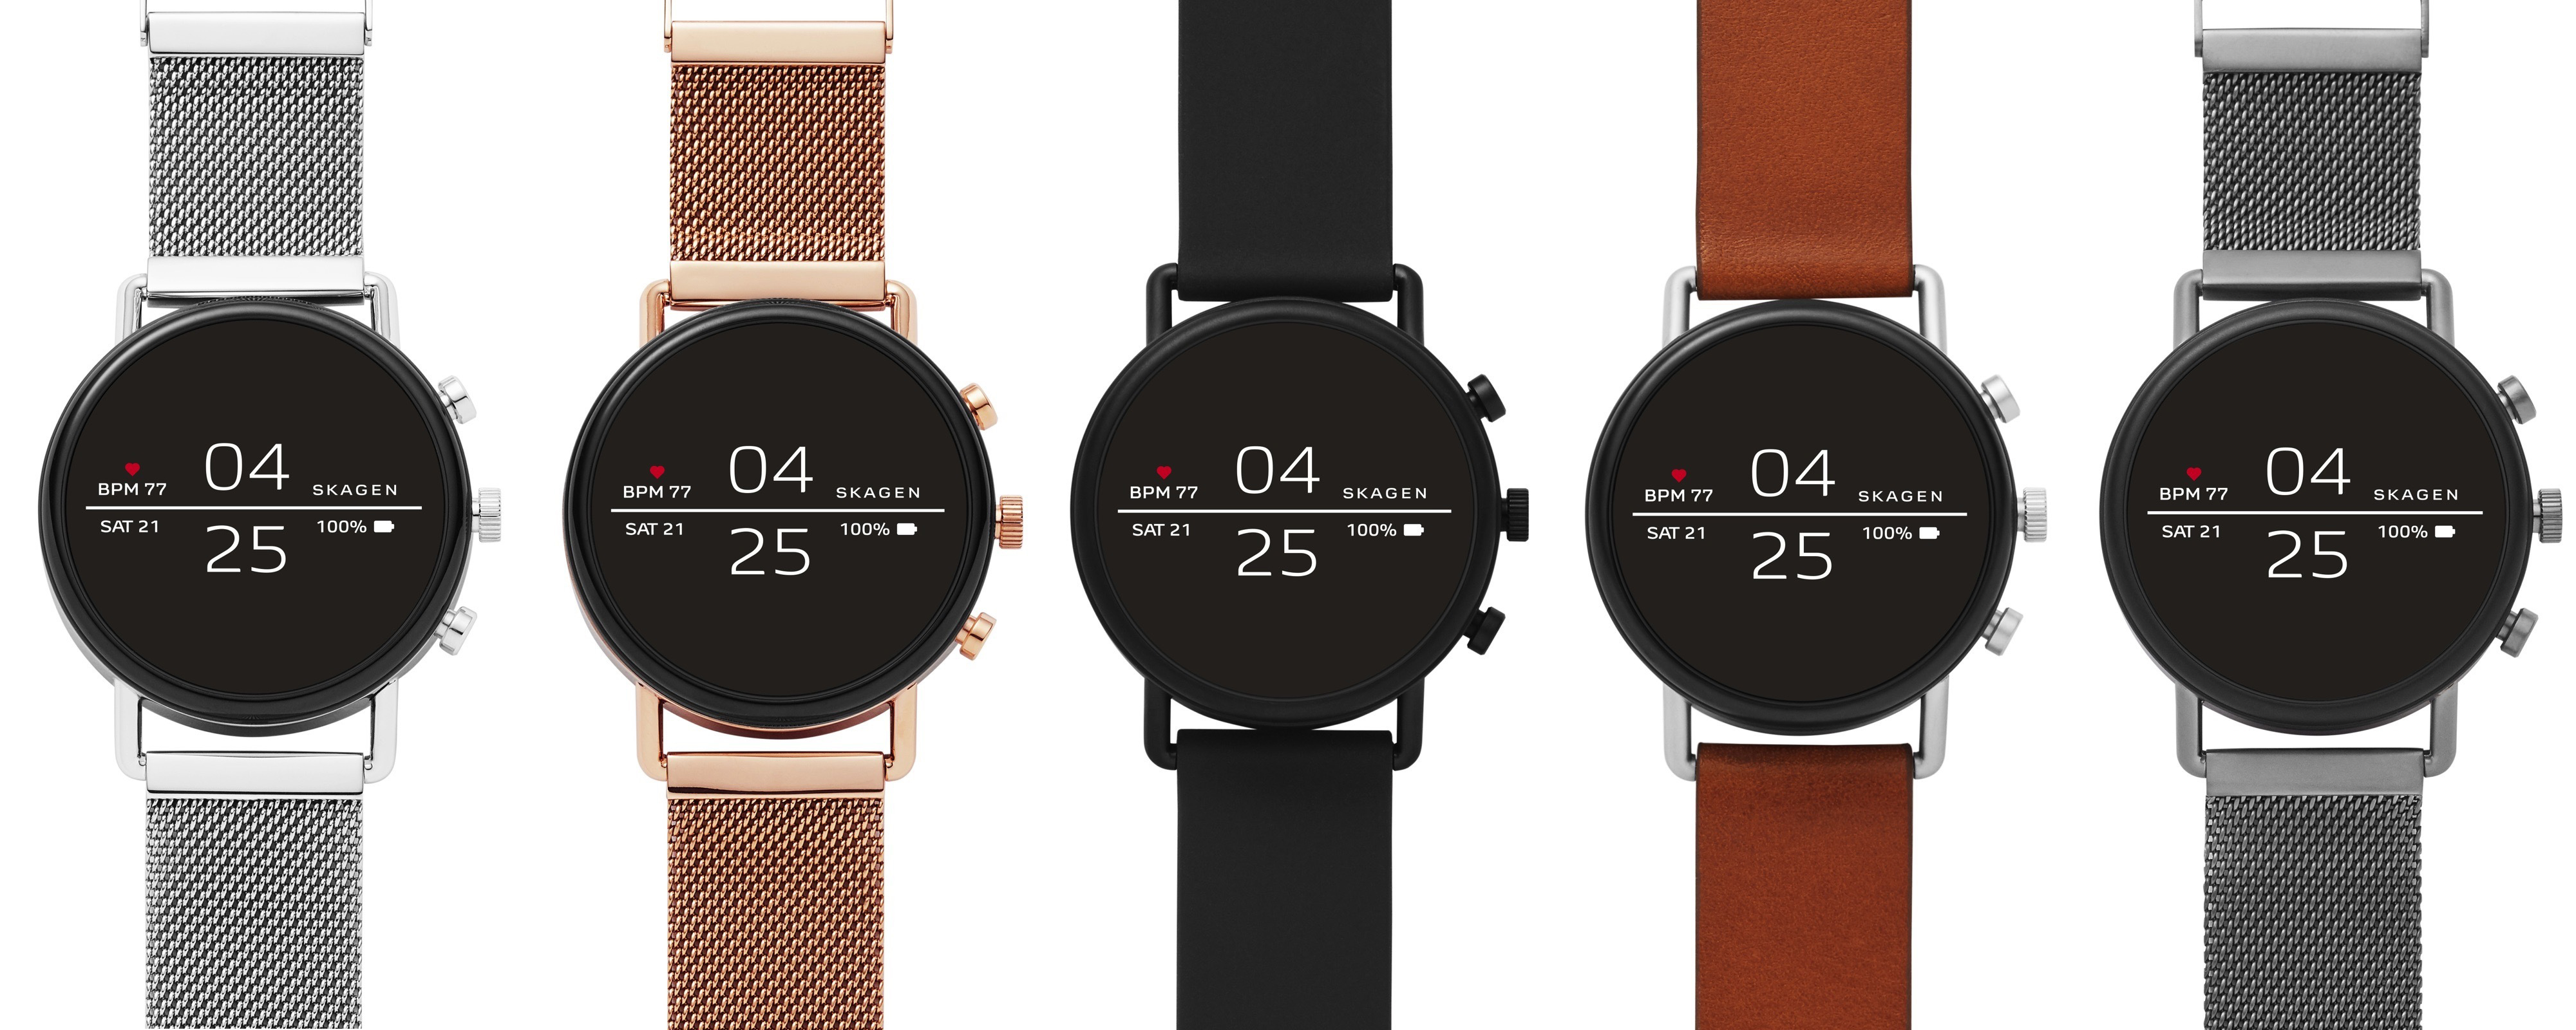 Skagen's Falster 2 Wear OS smartwatch is a steal at just $70 ($225 off)